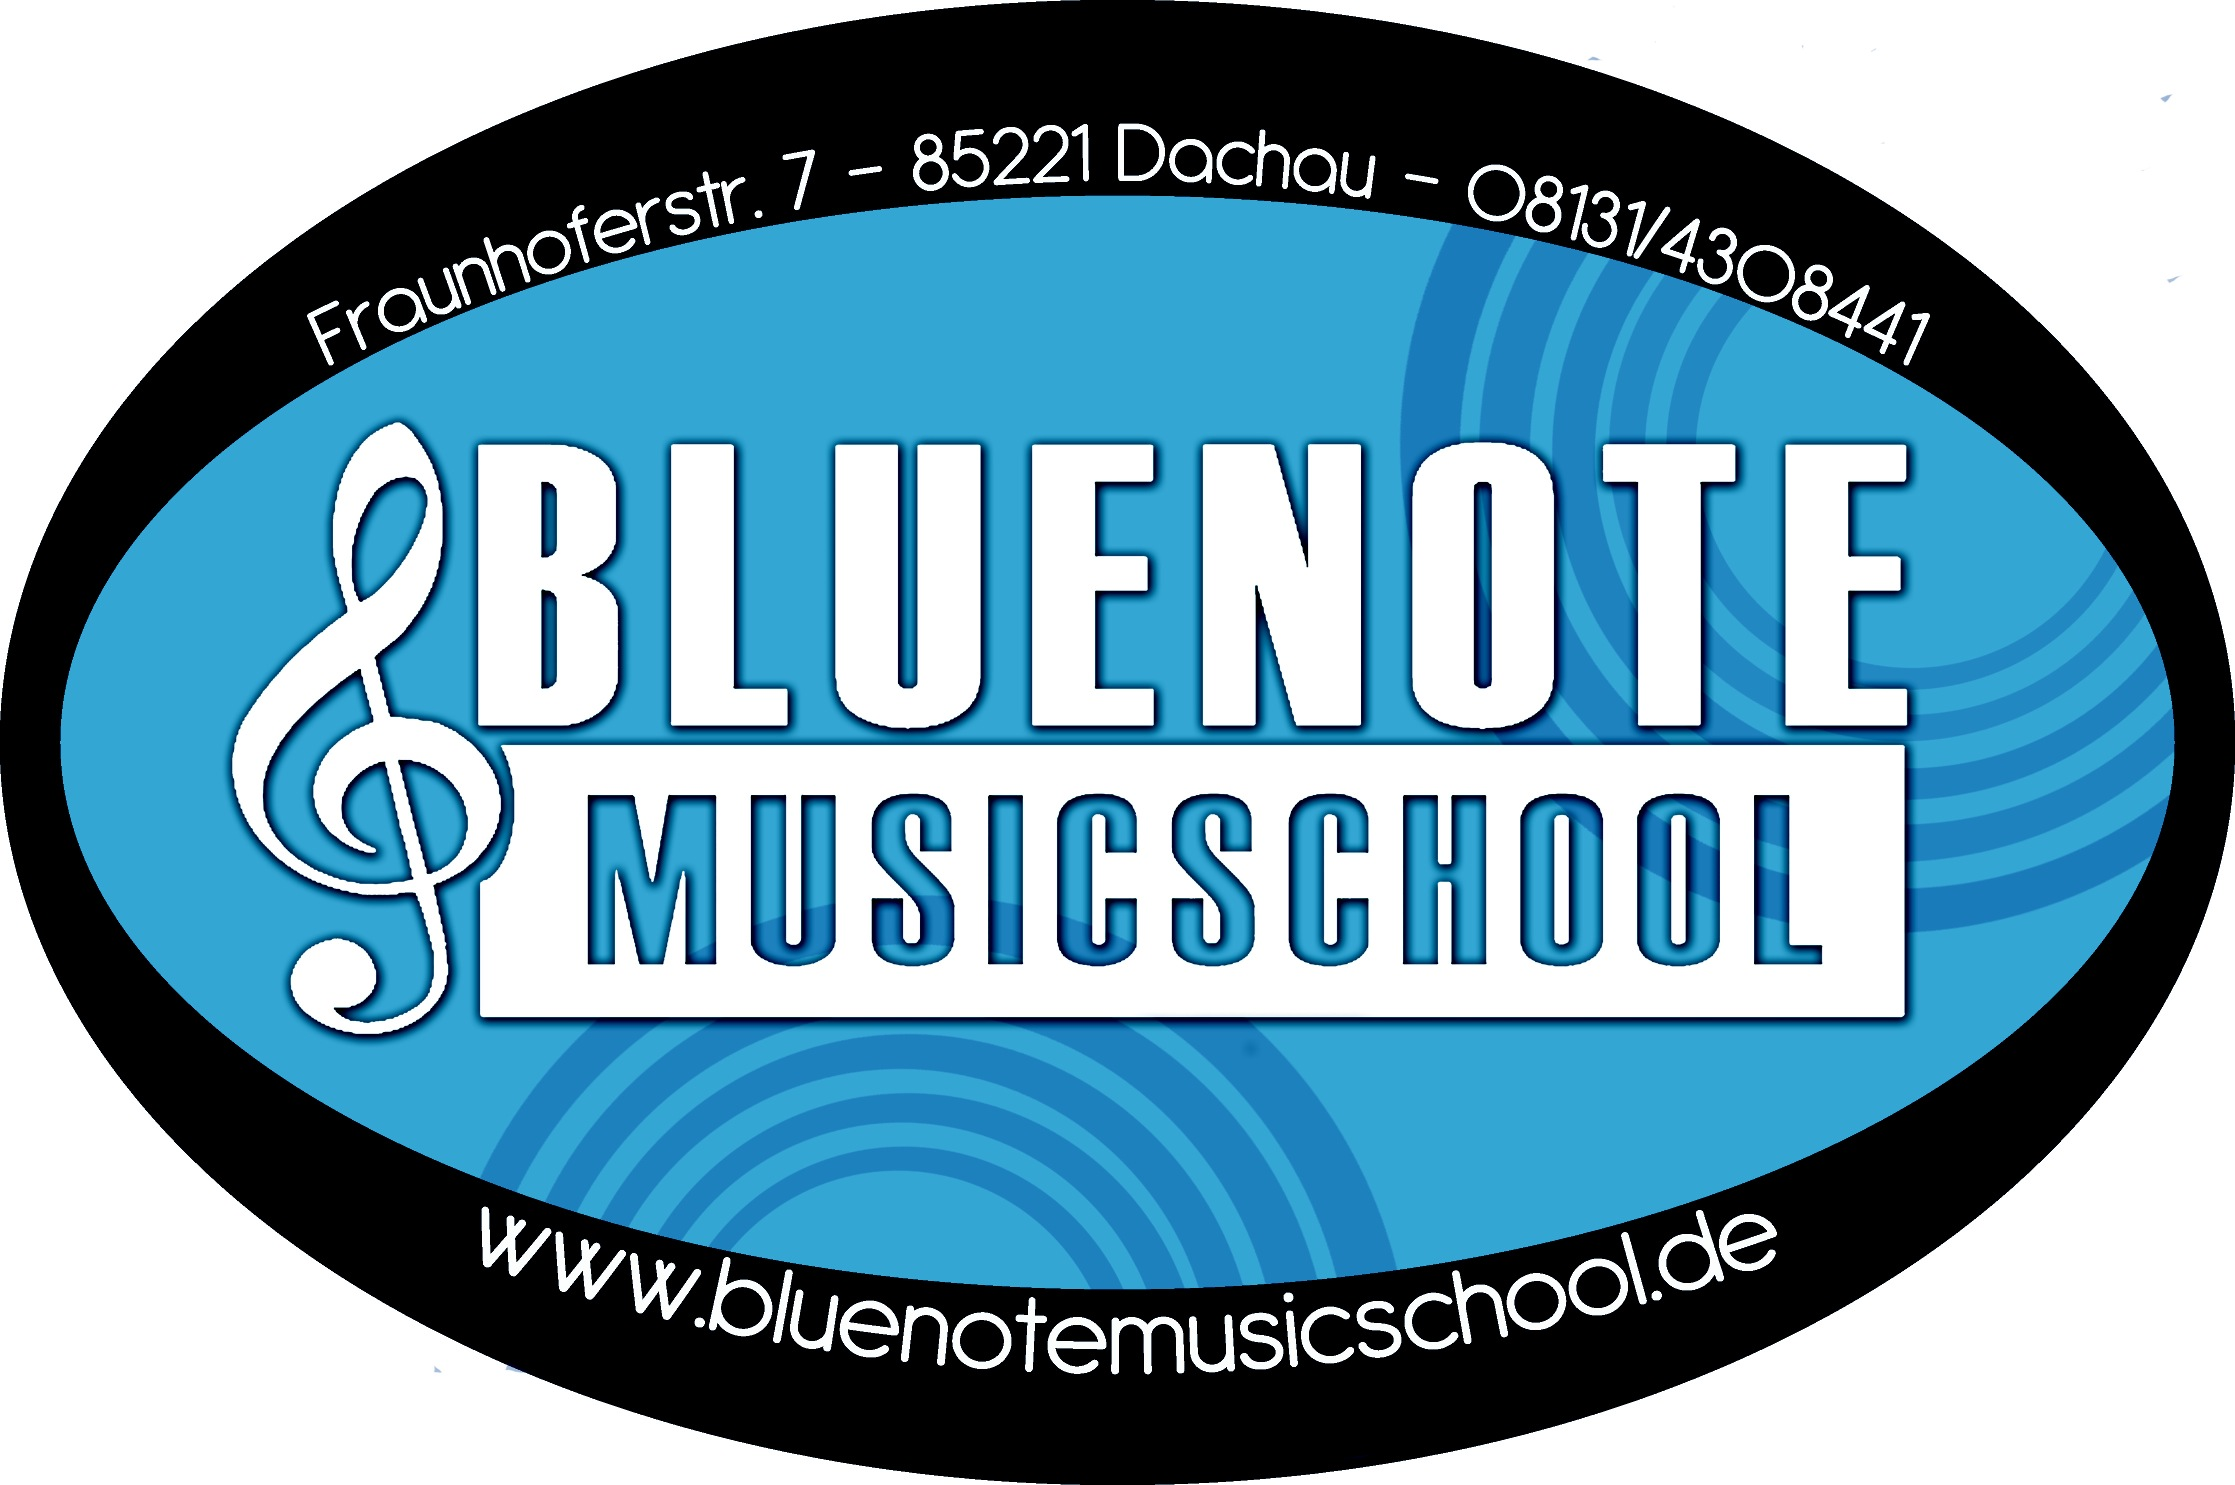 Bluenote Musicschool